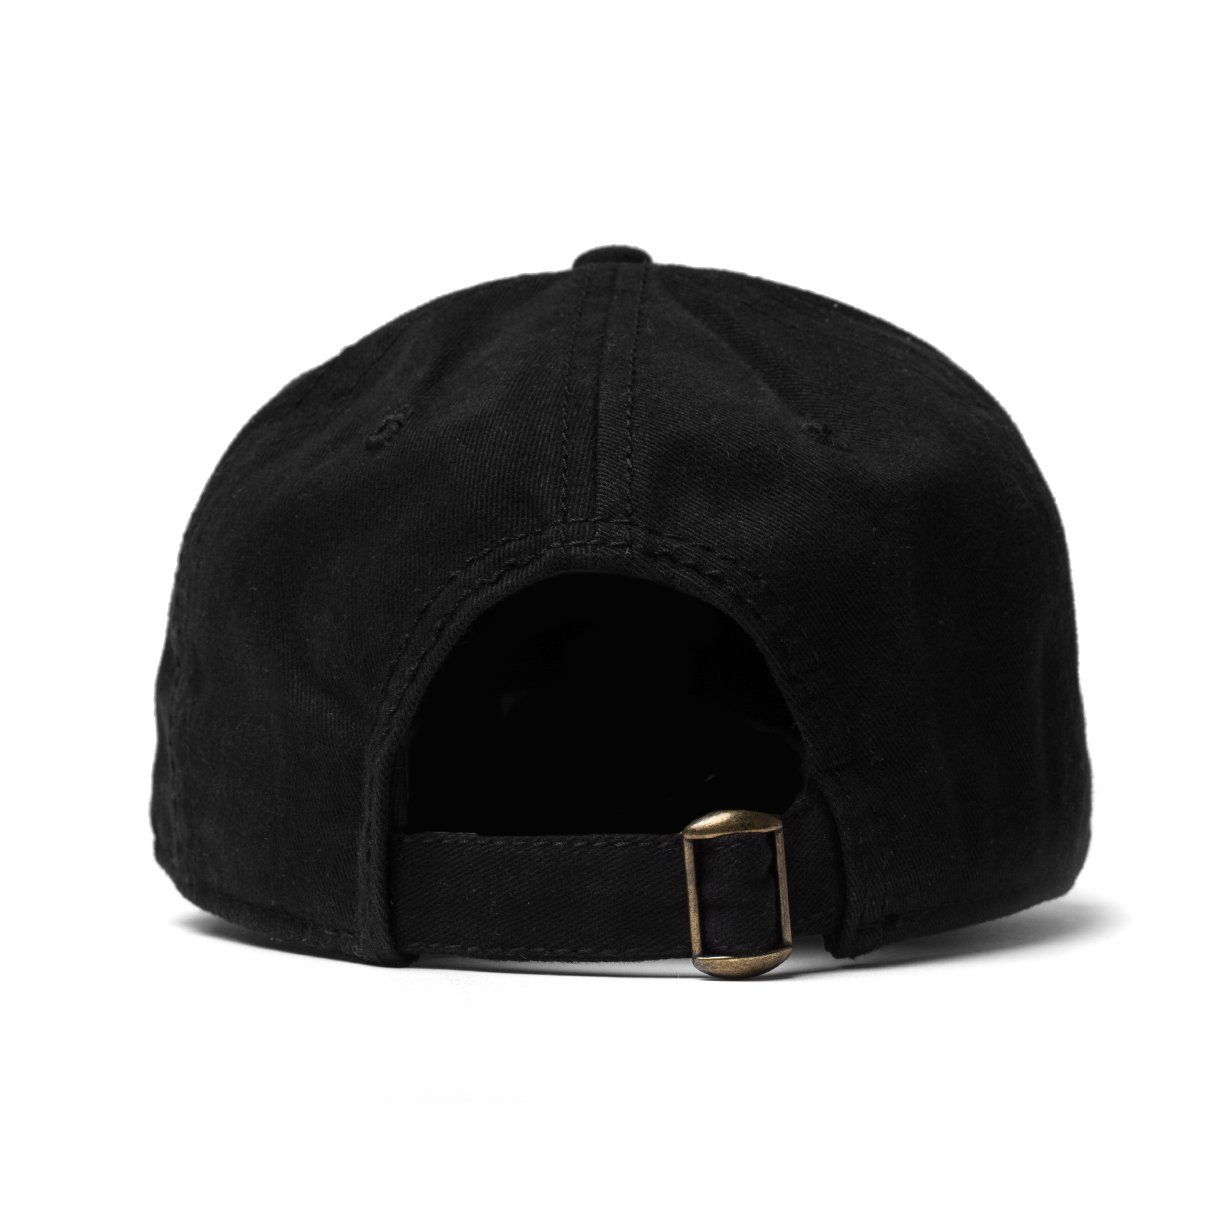 Amazon.com  AA Apparel Yeezus Tour Glastonbury Dad Hat Kanye West Yeezy  (Black)  Clothing 723c8d3fd3a